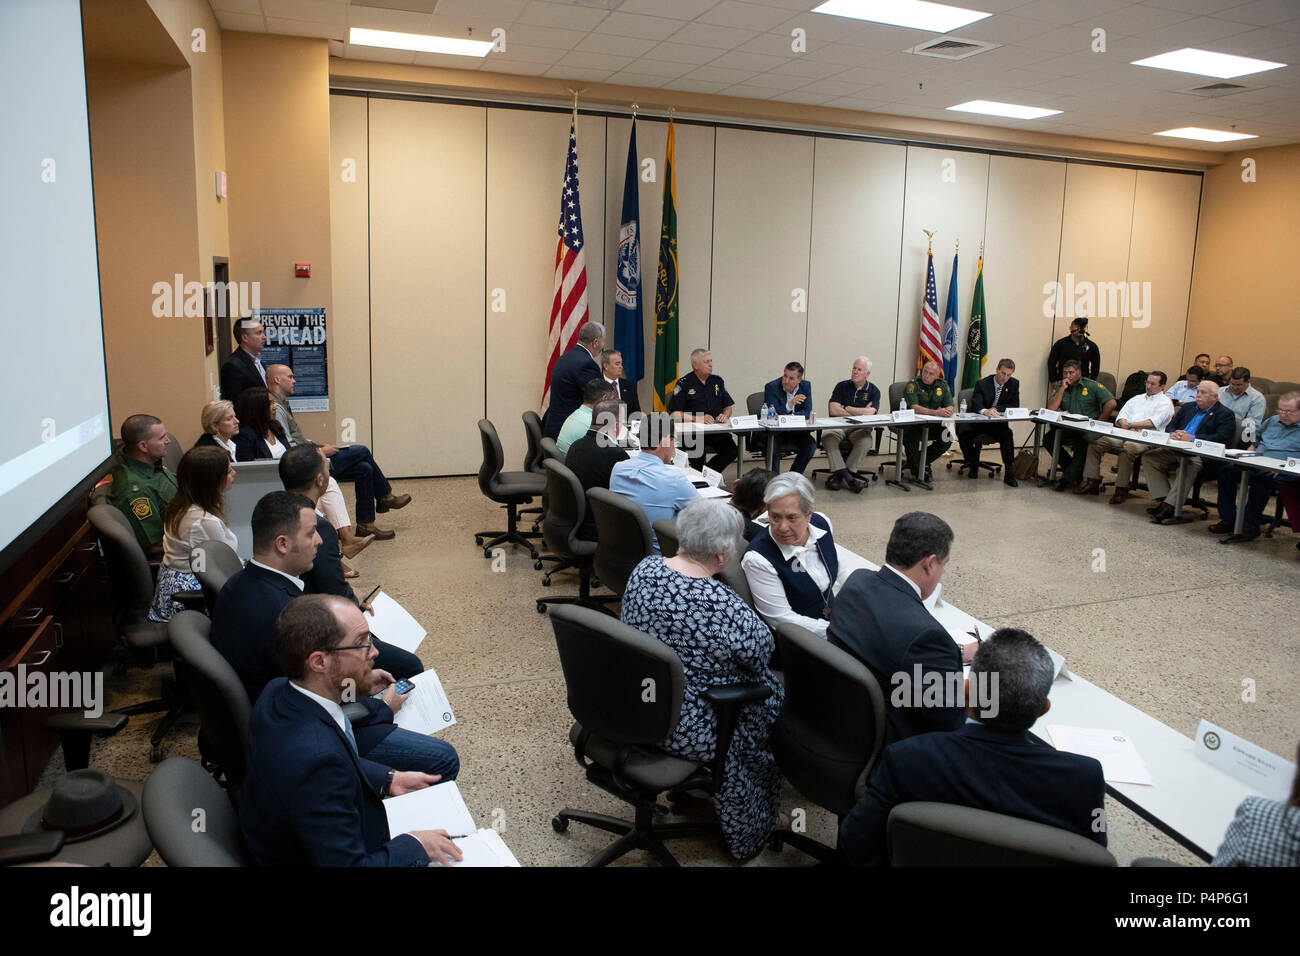 Seated between flags, U.S. Senators Ted Cruz, left, and John Cornyn listen as federal and Texas officials and stakeholders meet in a round-table discussion of the immigration crisis hitting the Texas-Mexico border. Confusion and public outrage reigned regarding the Trump administration's policy of separating undocumented immigrant parents from their children after crossing into the U.S. from Mexico. - Stock Image